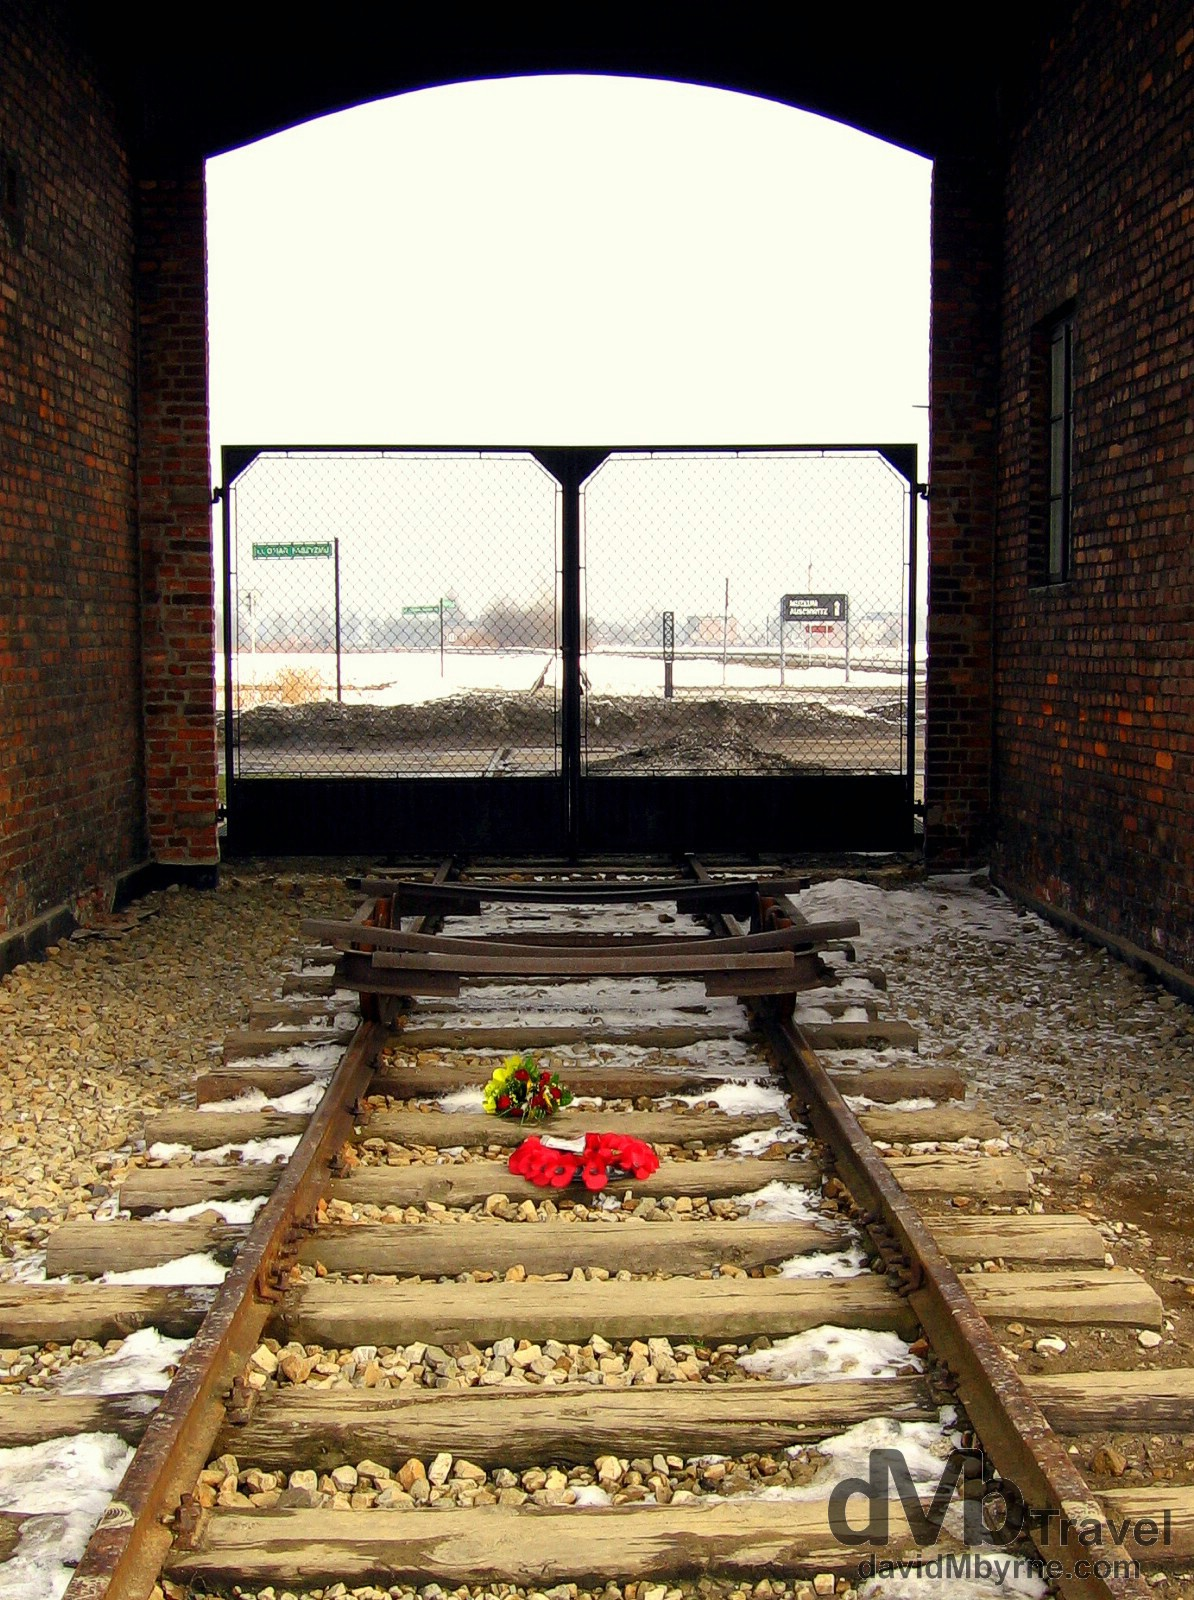 Two small bouquets on the tracks at the entrance to the Birkenau Concentration Camp, Brzezinka, Poland. March 7th 2006.